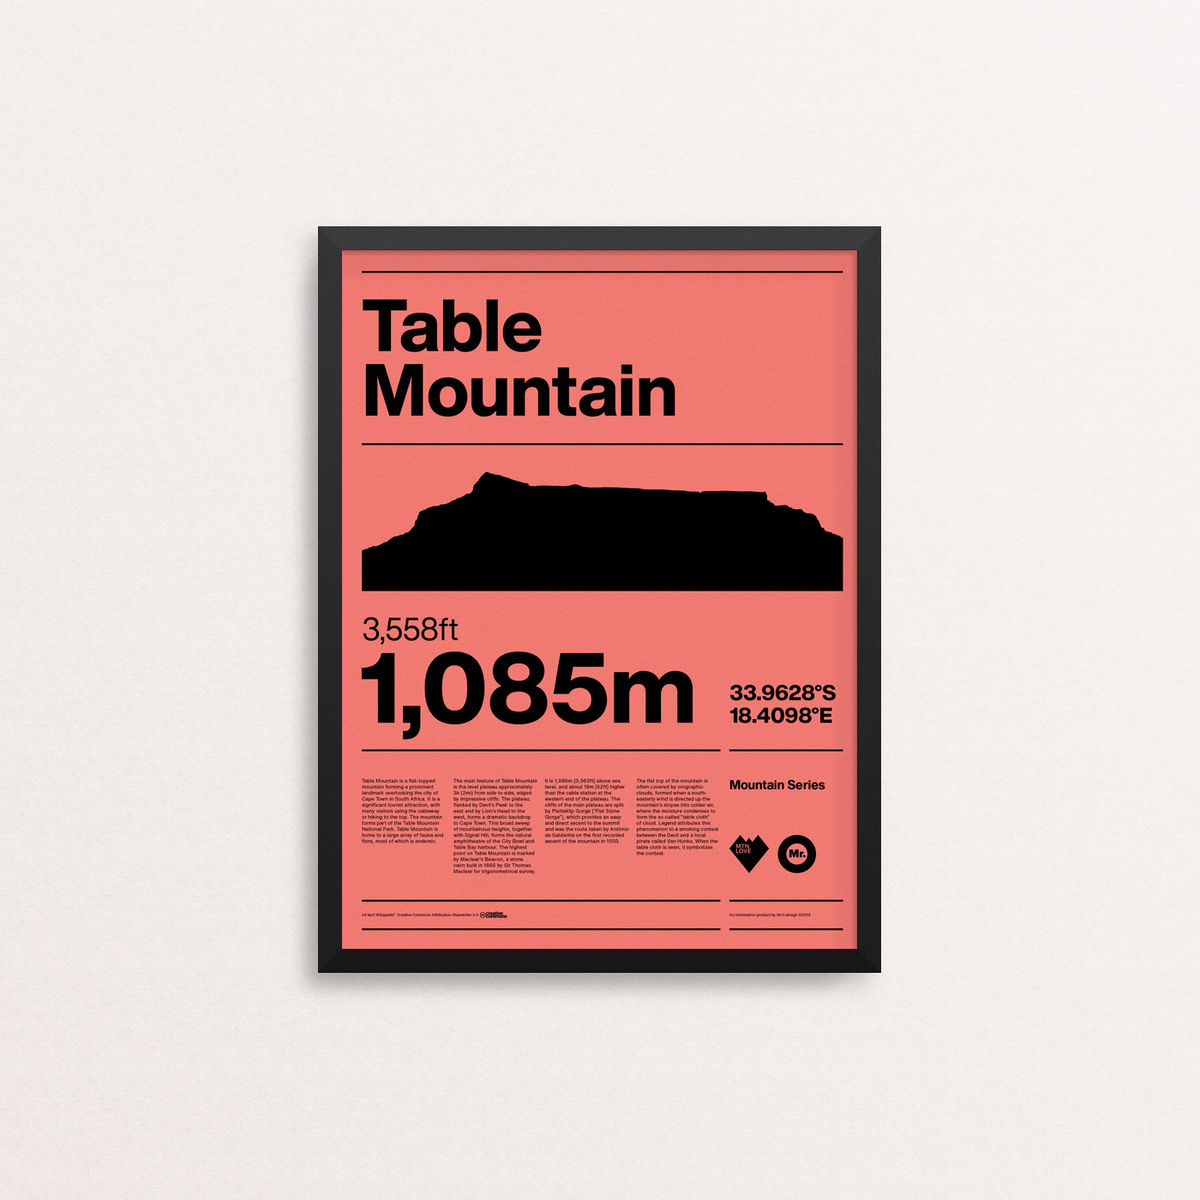 MTN Love - Table Mountain - product image